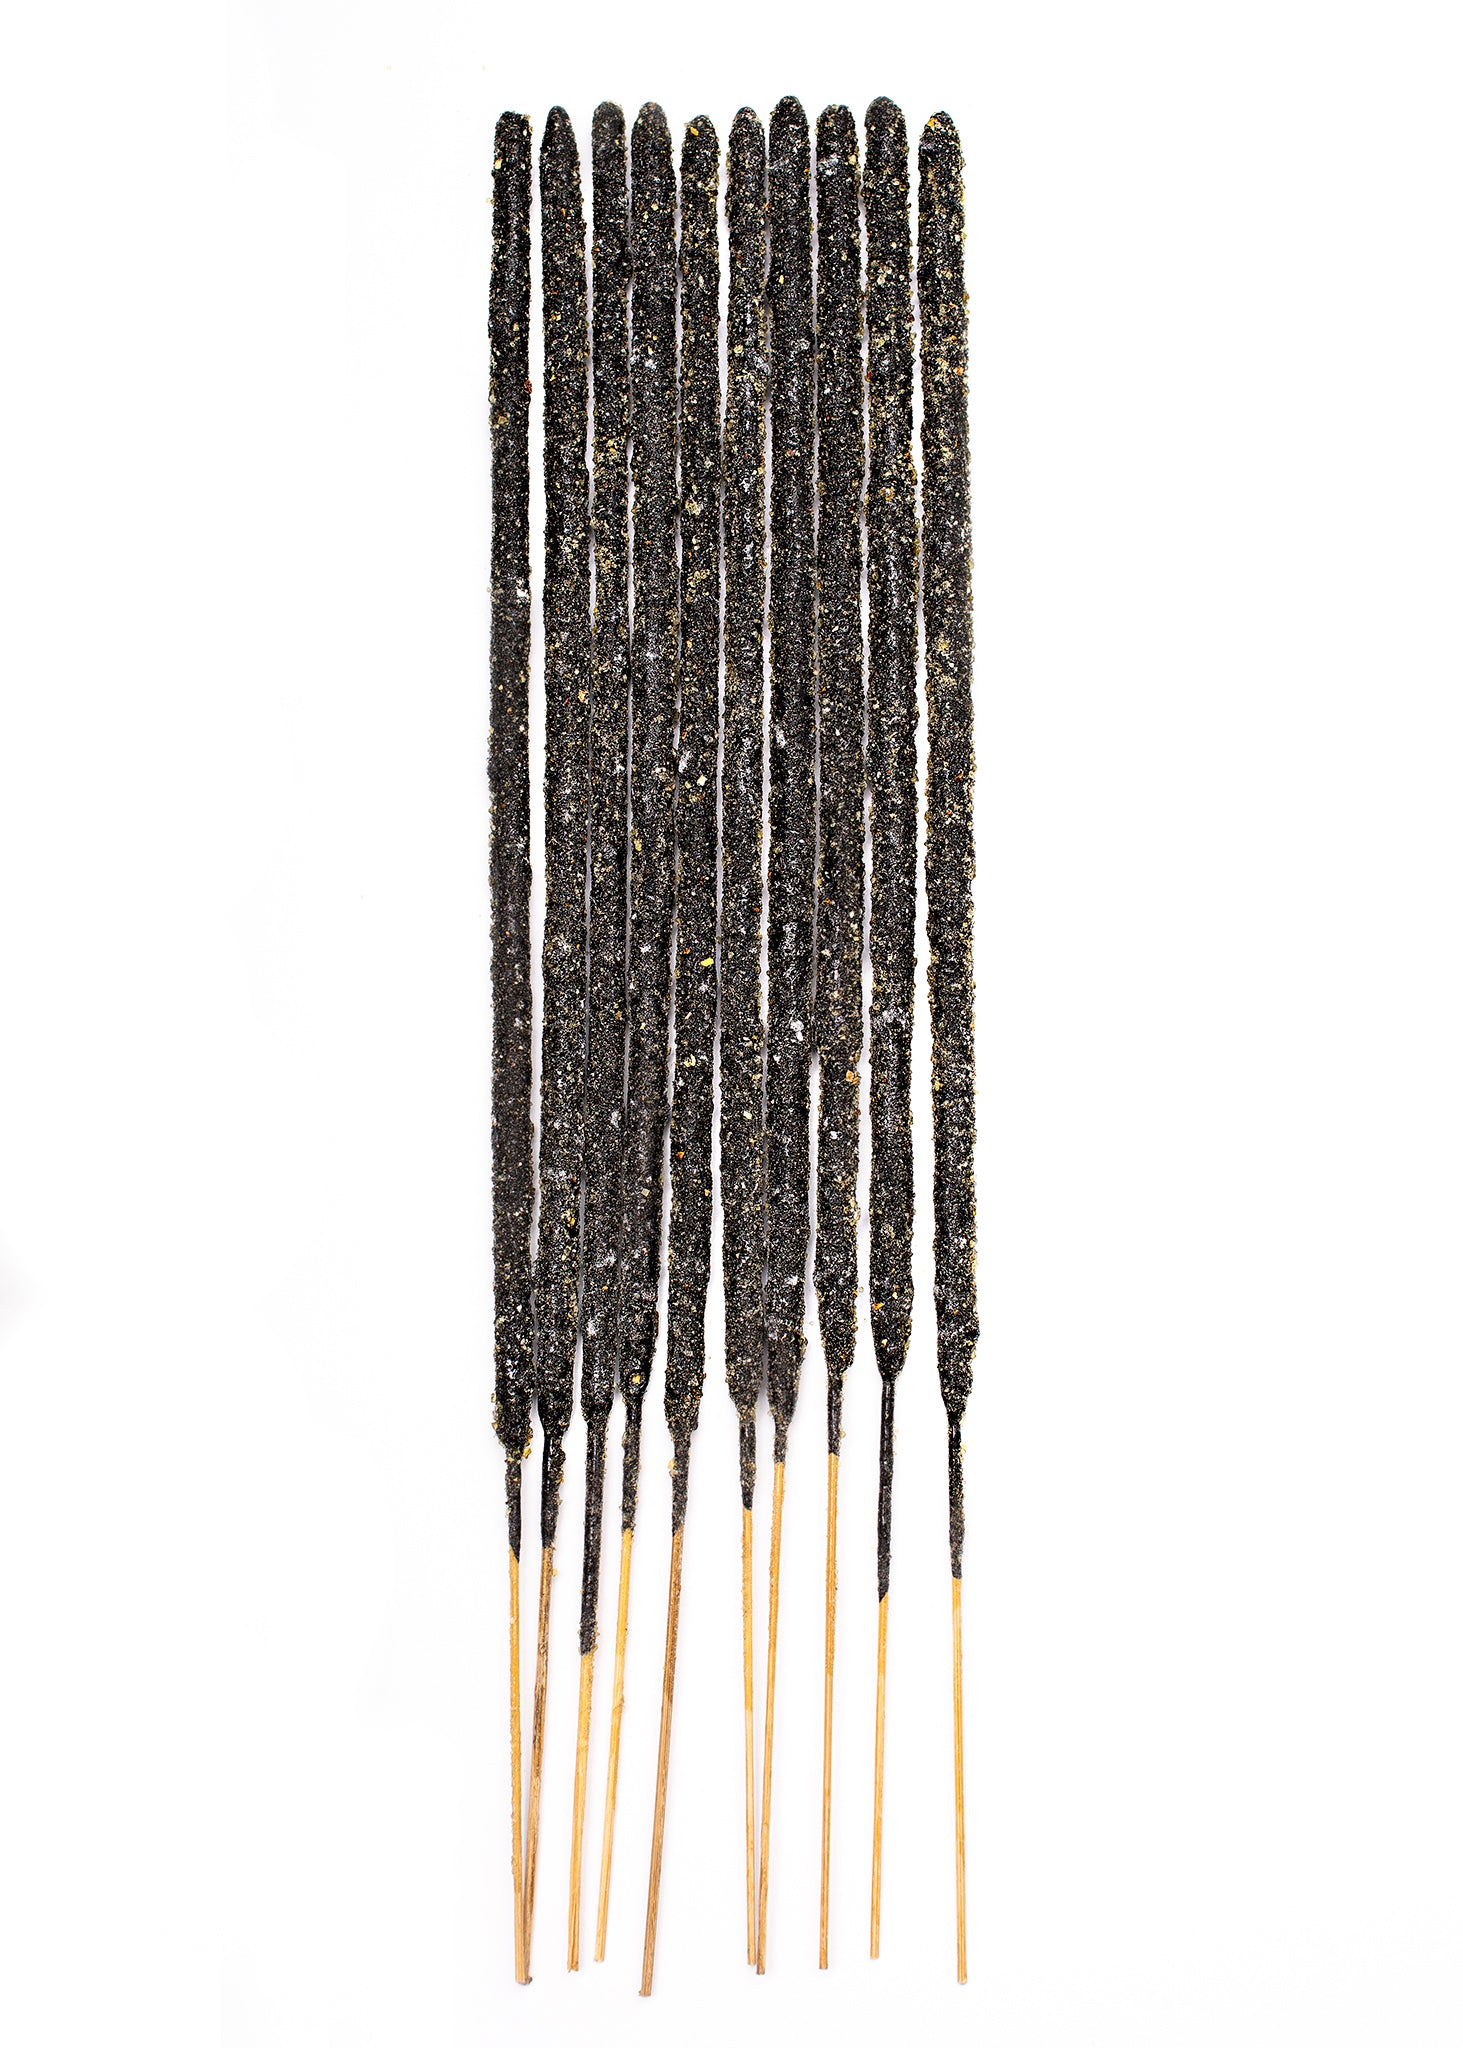 Mexican Black Copal Incense Sticks